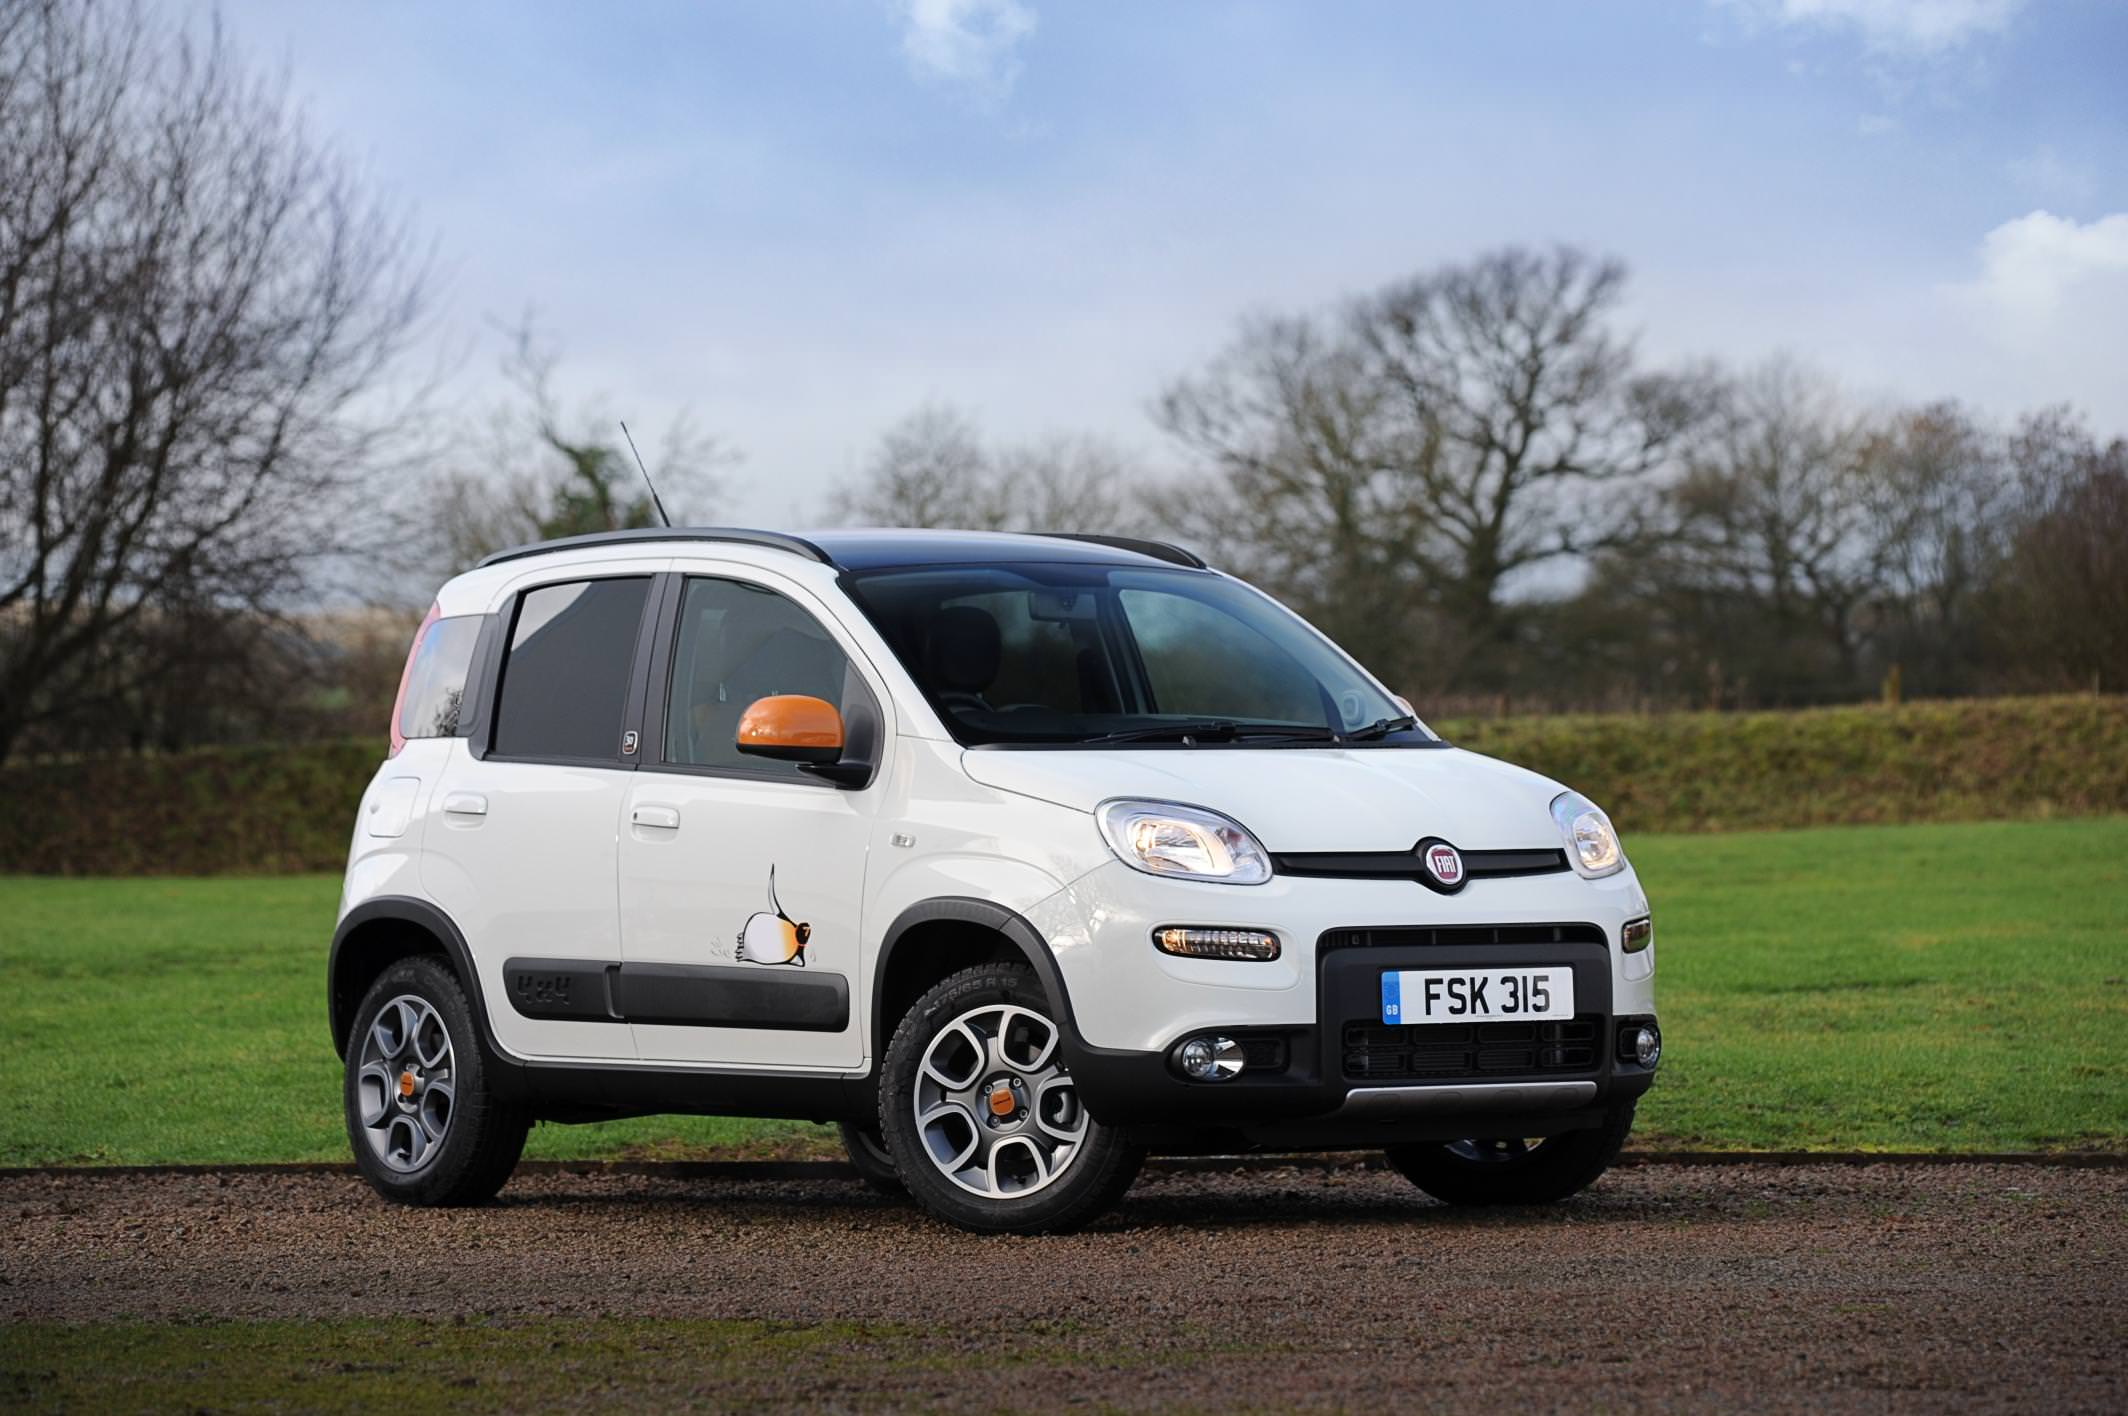 image of a white fiat panda 4x4 car exterior